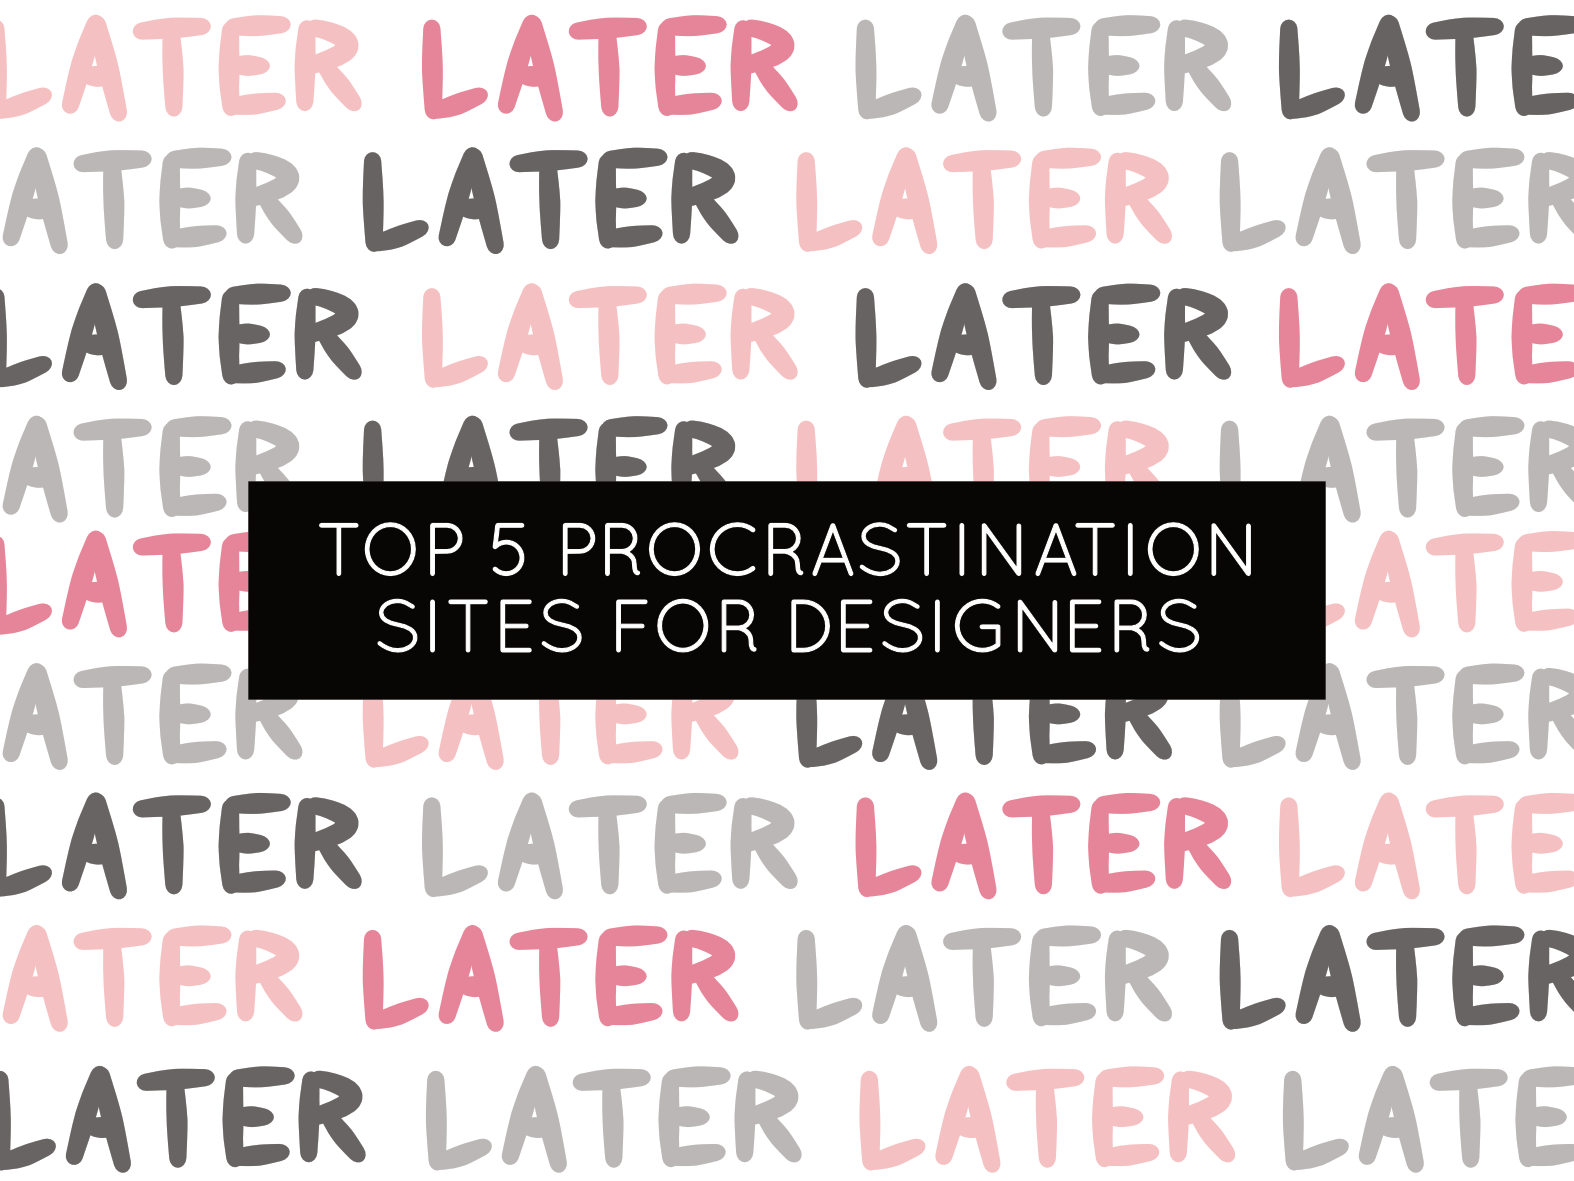 websites for productive procrastination